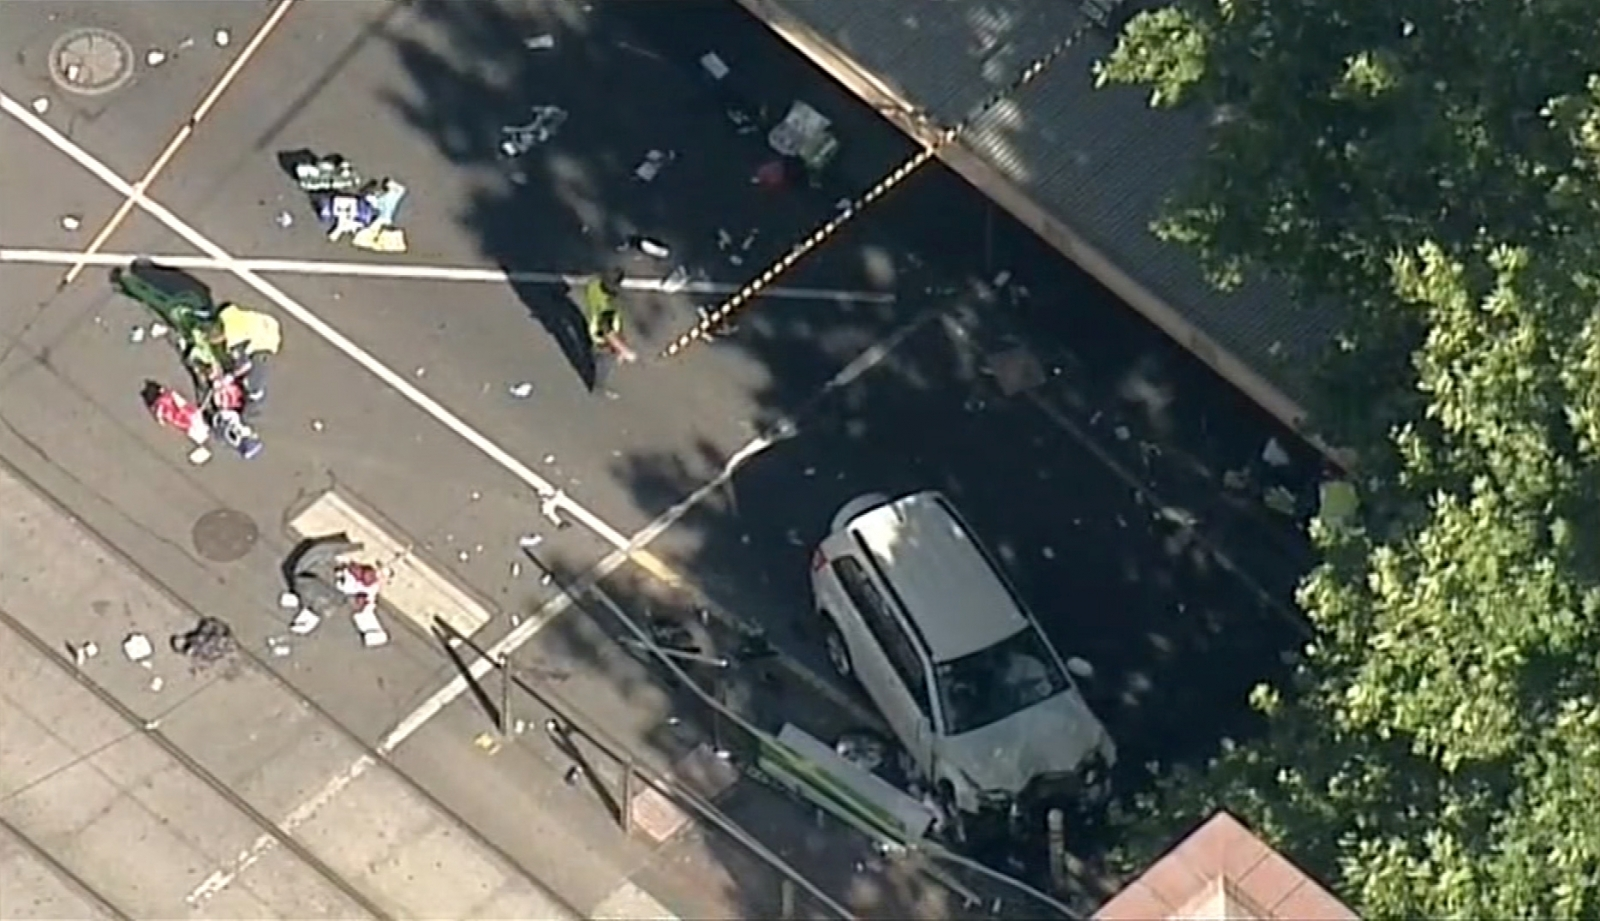 Melbourne vehicle attack was not linked to terrorism